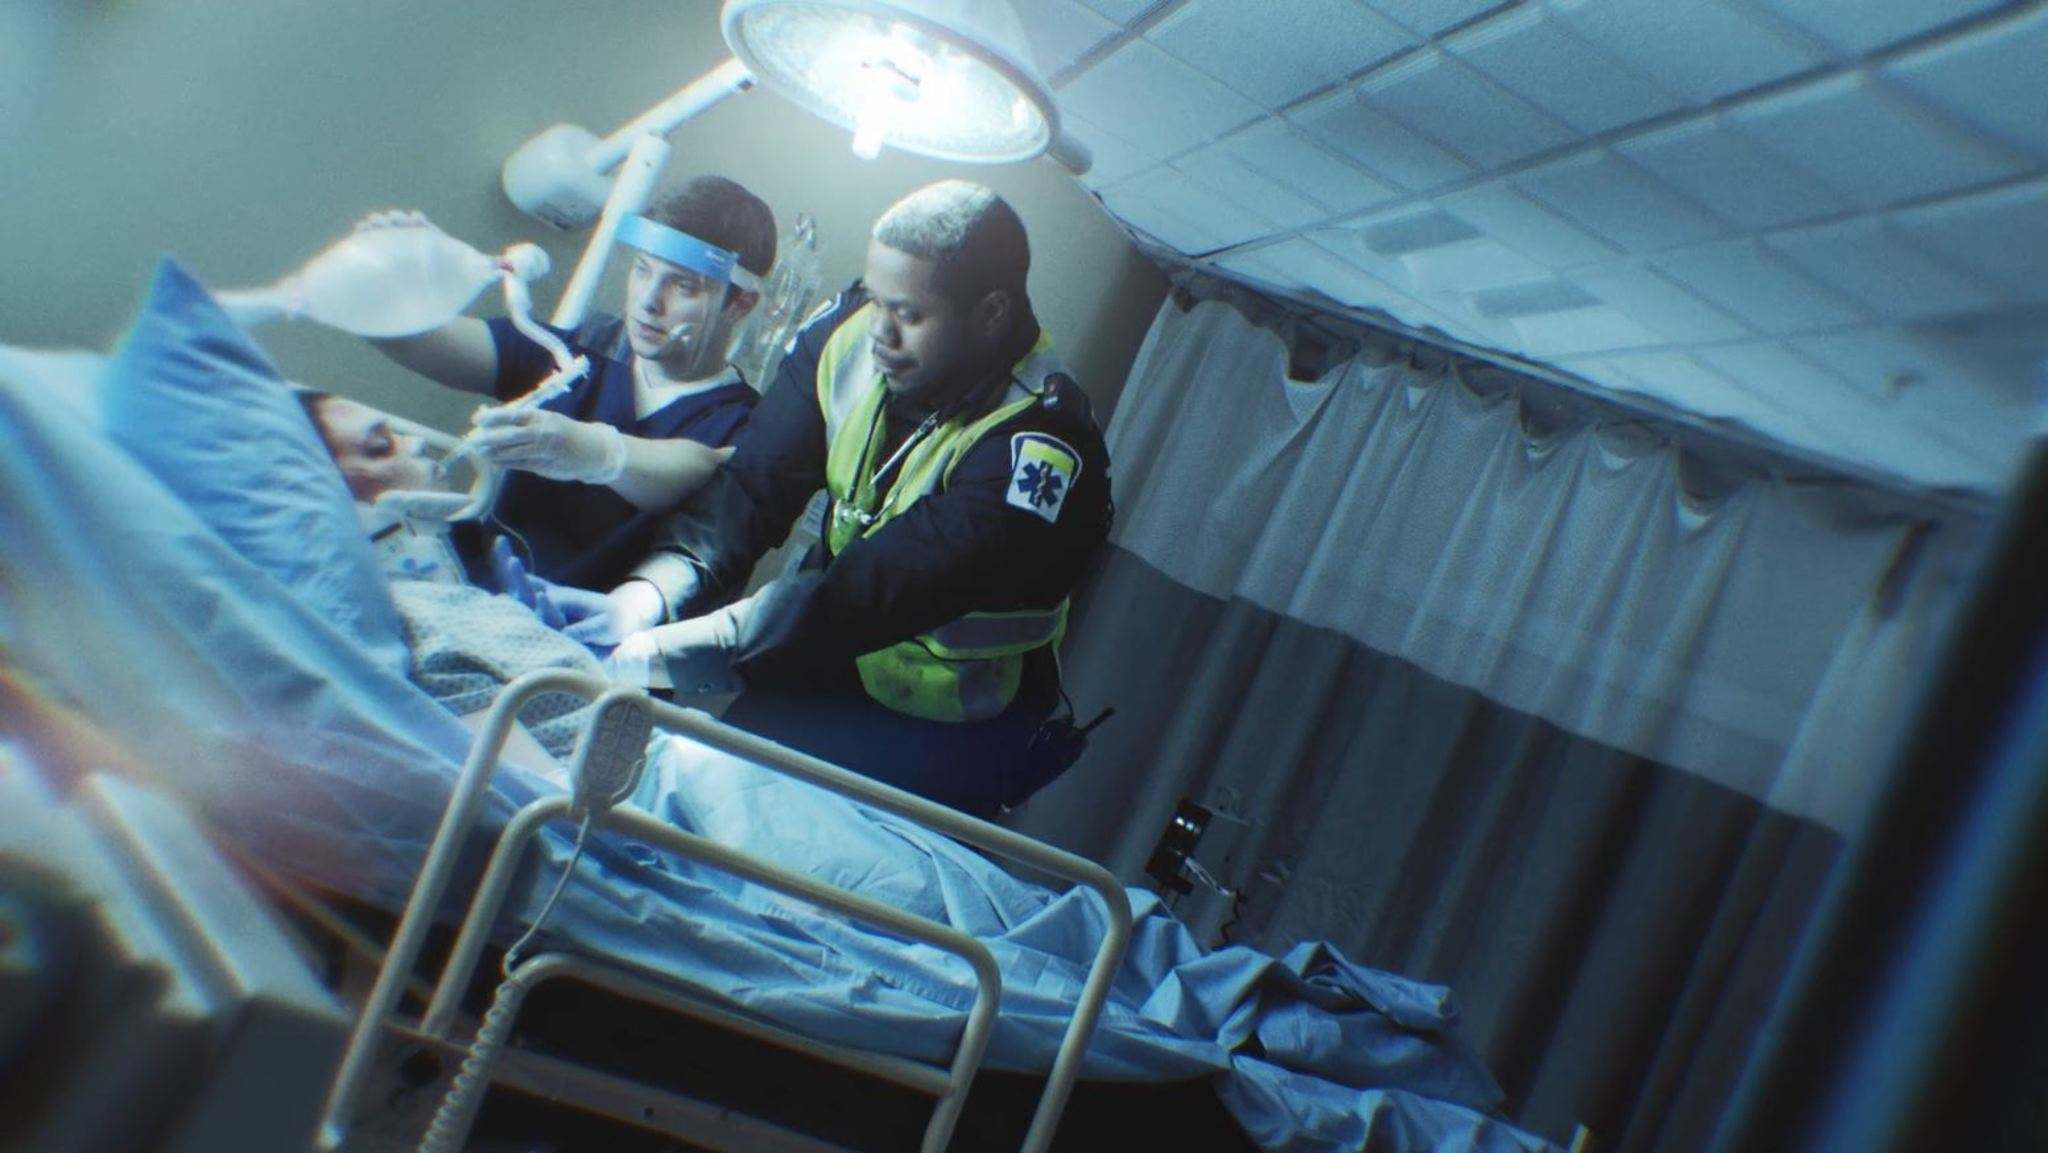 An image from the new Don't Drive High video shows a victim of a cannabis-impaired car crash dying in hospital. (Government of Canada)</p>